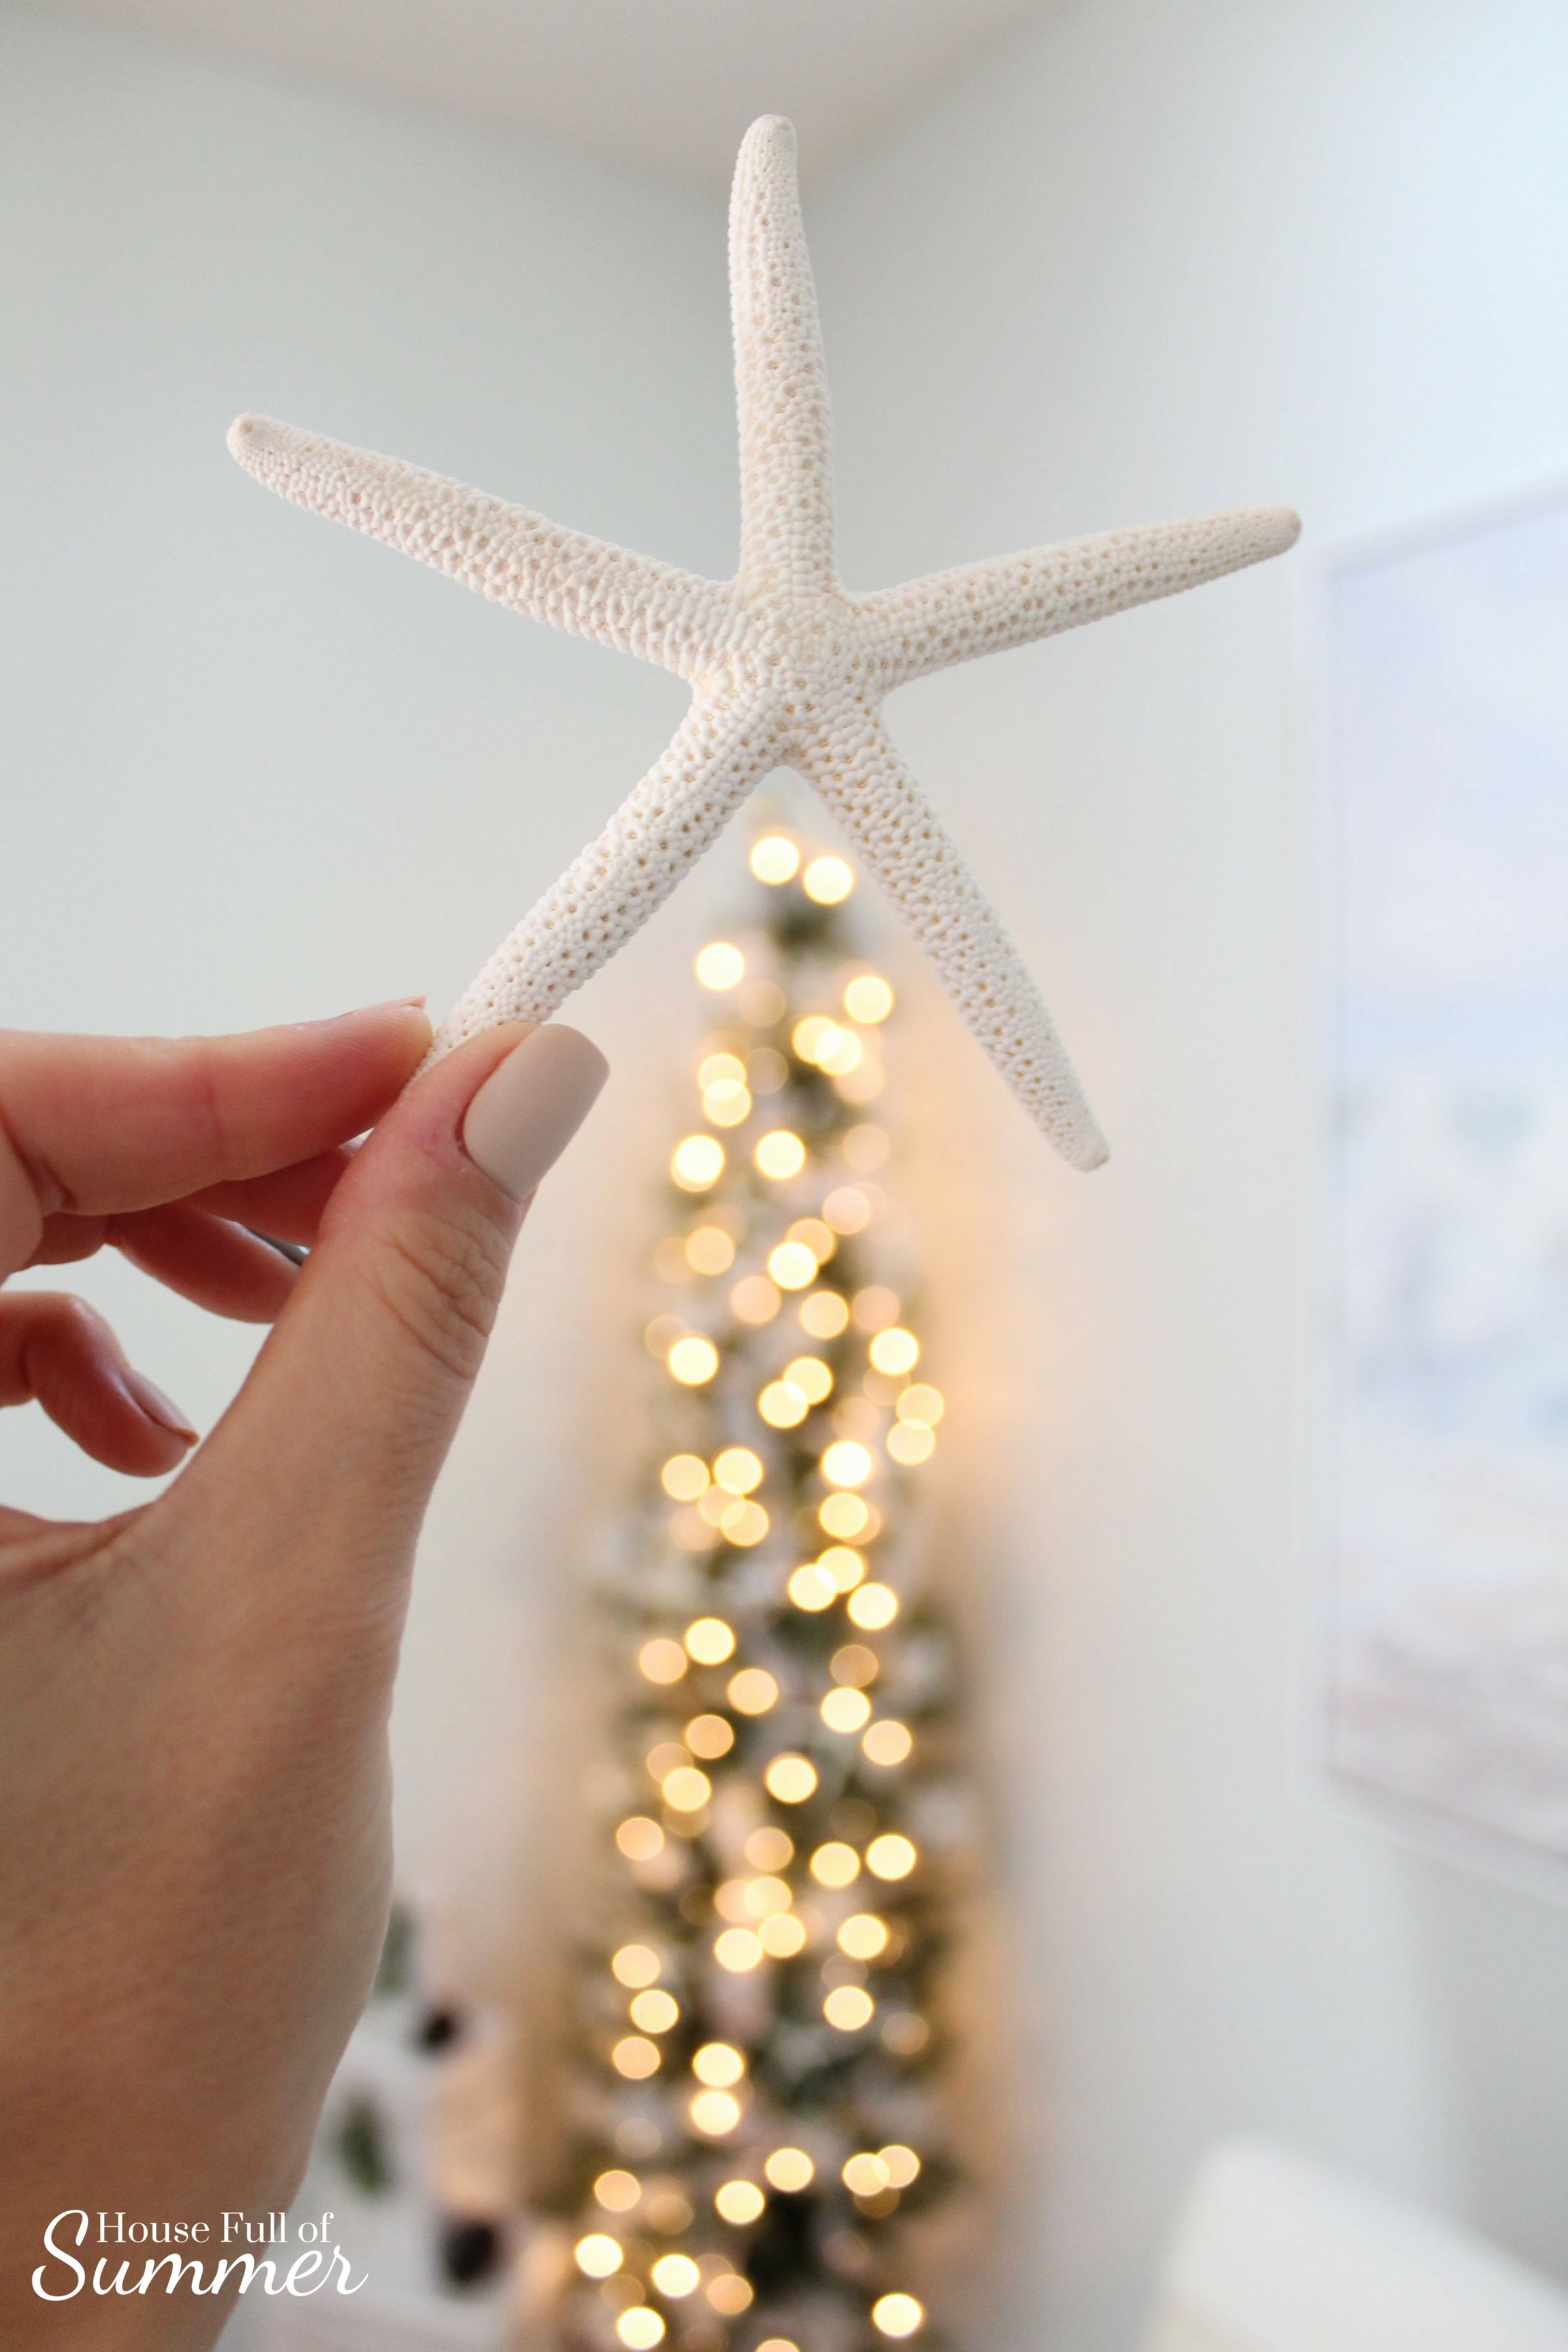 Christmas Home Tour | House Full of Summer blog hop - Cheerful Christmas Home Tourcoastal christmas neutral christmas decor, holiday home tour, florida christmas, starfish christmas decor, bokeh christmas lights